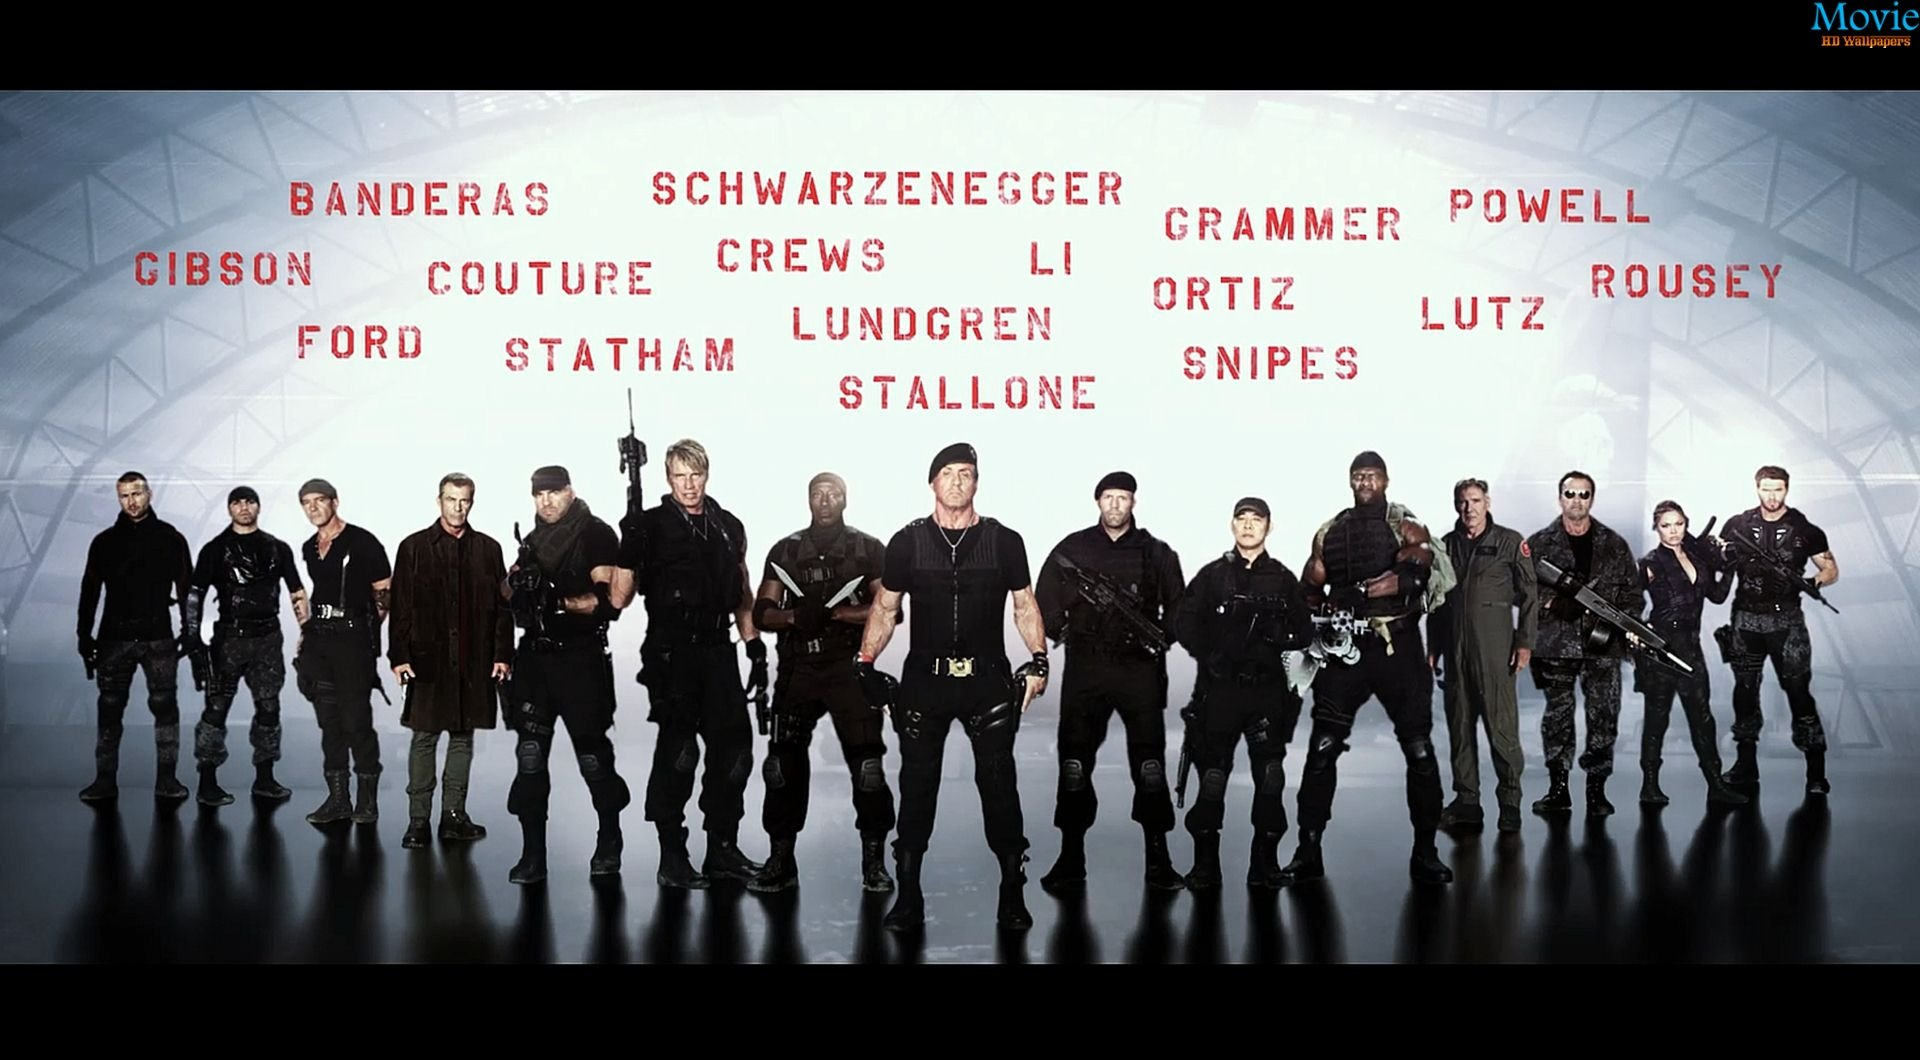 the expendables 3 - movie hd wallpapers